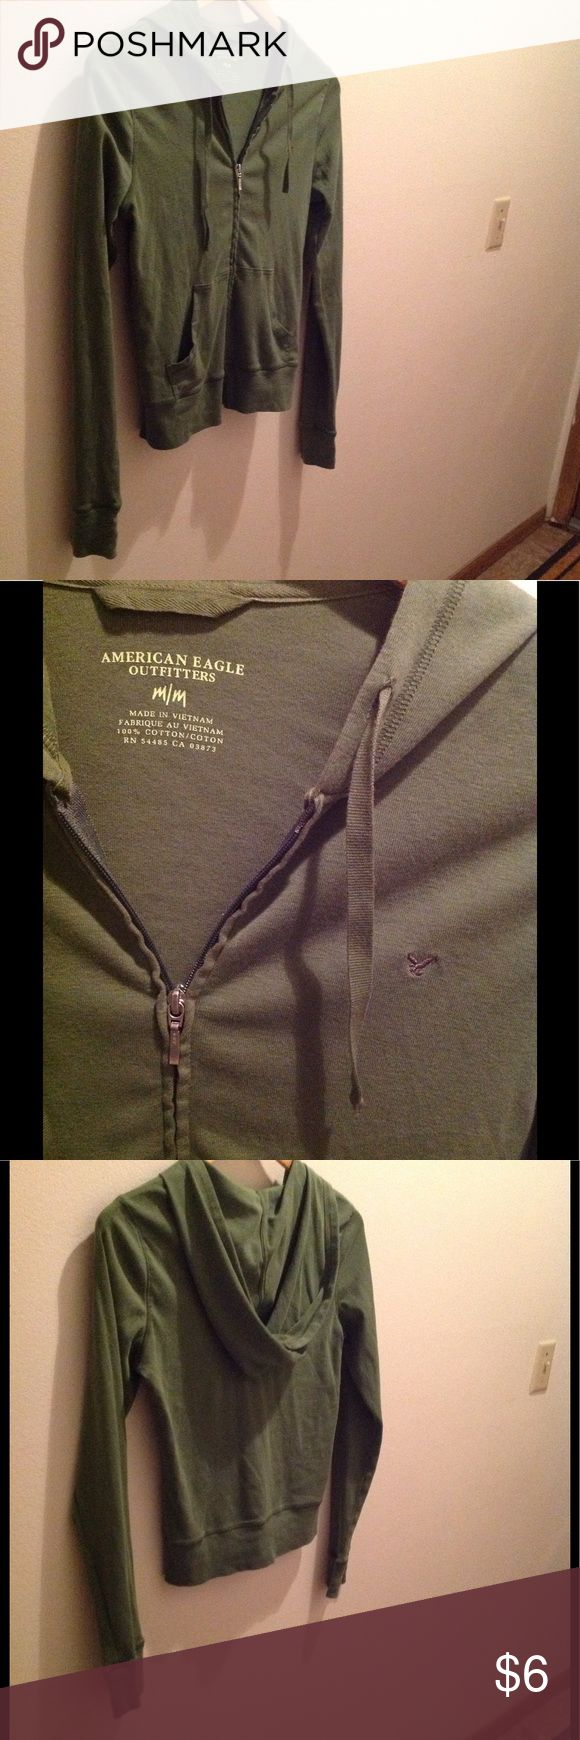 American Eagle Outfitters Jacket American Eagle Outfitters Jacket. Size: medium. American Eagle Outfitters Jackets & Coats